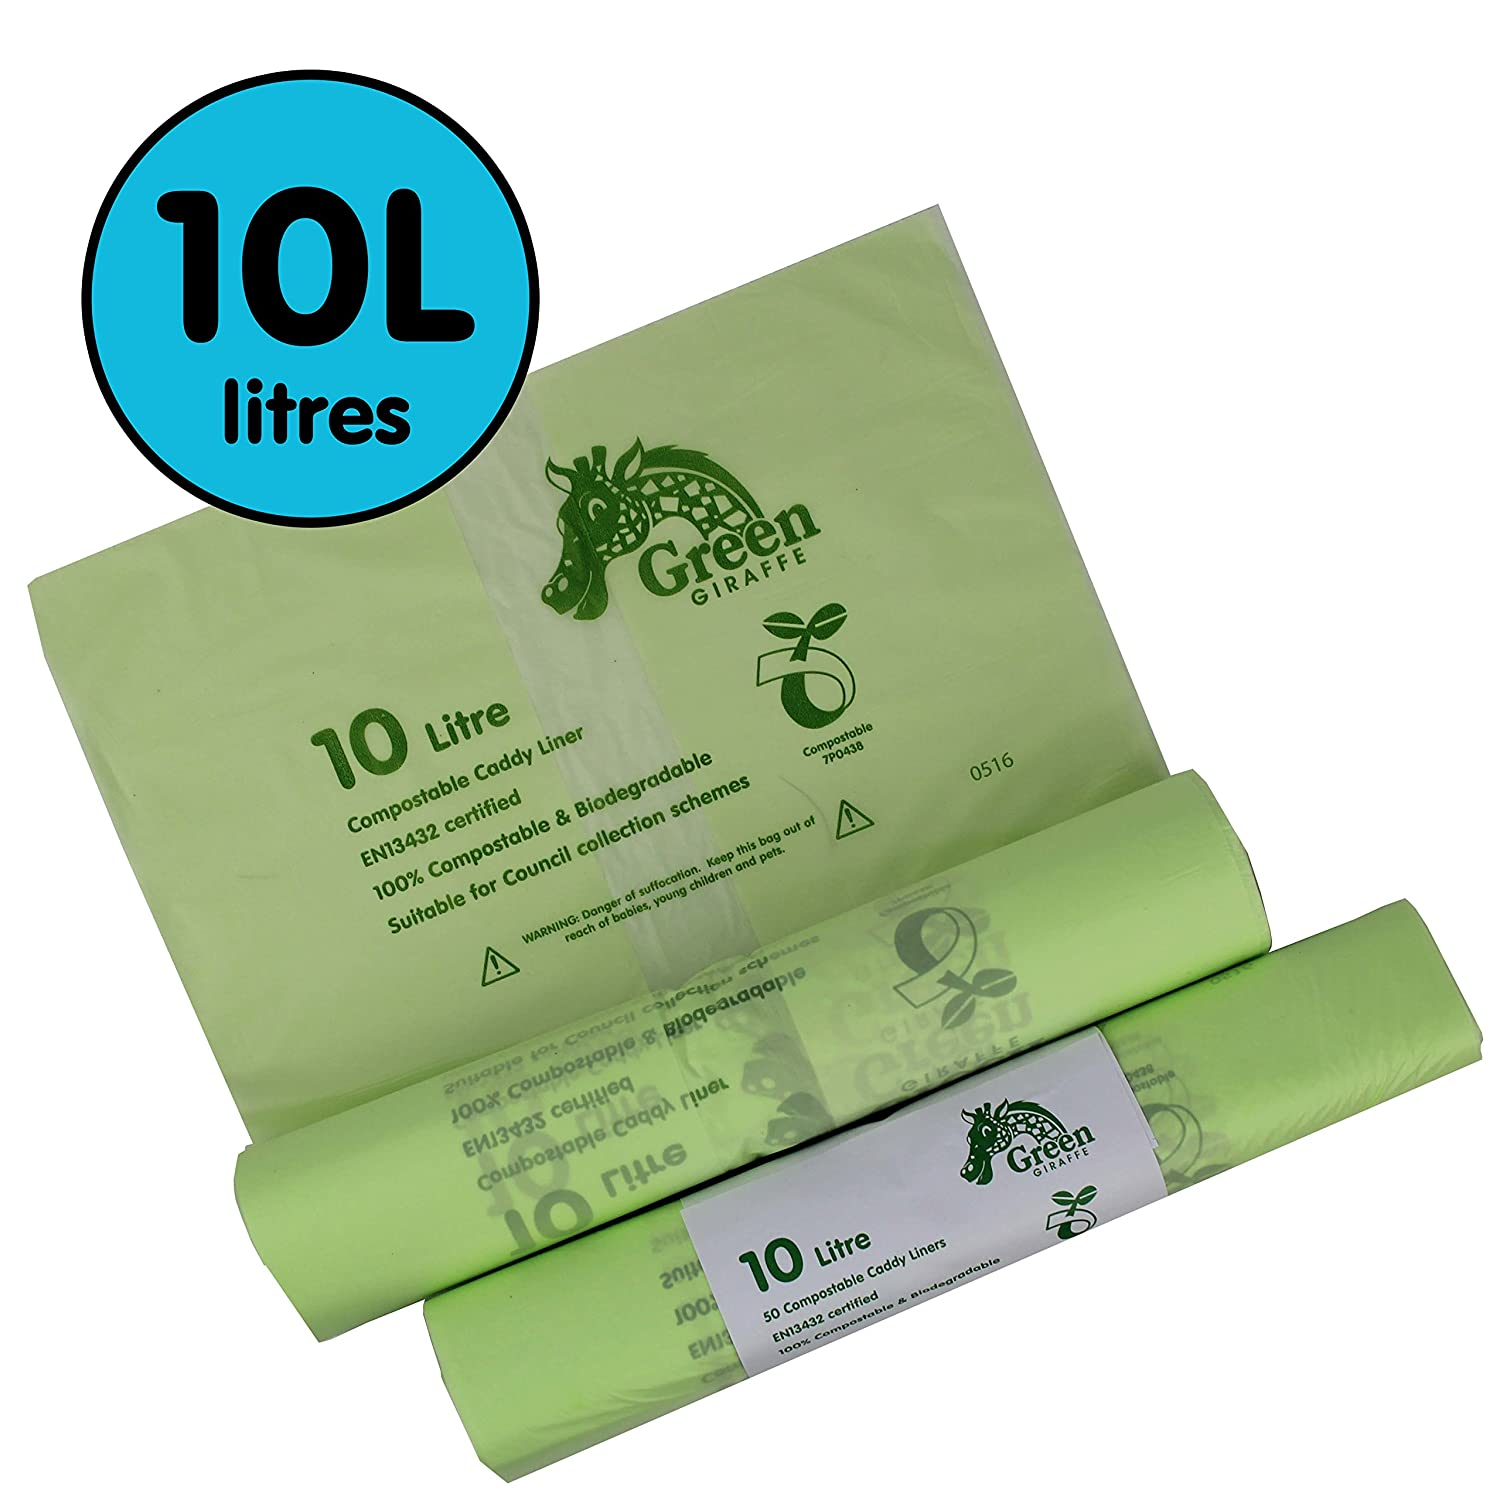 10 Litre x 100 bags Compostable Caddy Liners 10L Kitchen - Food Waste Bin Liners - EN 13432 - Compost Bags All-Green